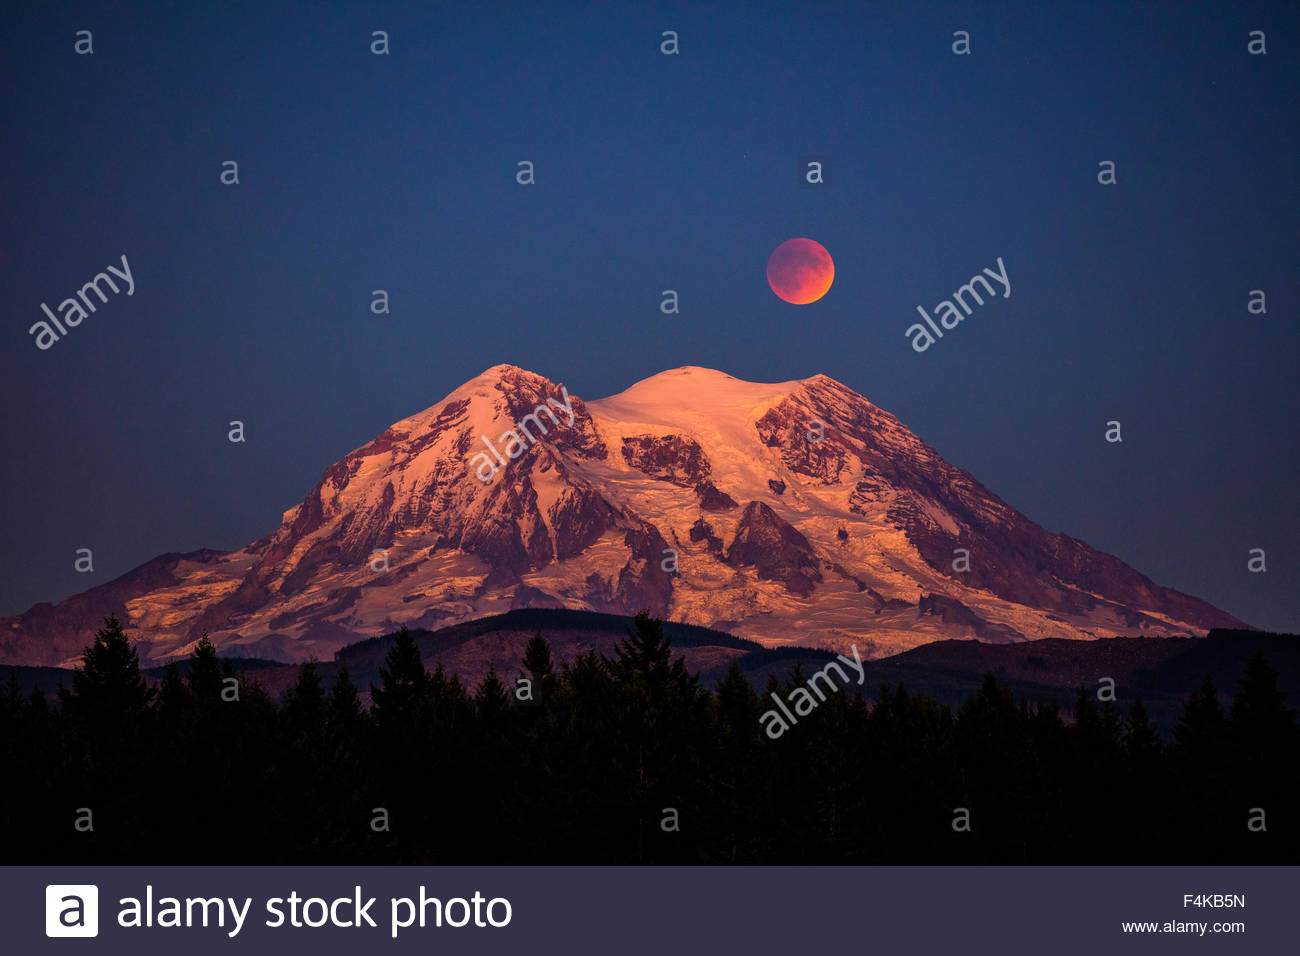 The full moon in a type of lunar eclipse known as a Super Blood Moon rises over Mount Rainier in Washington state. - Stock Image